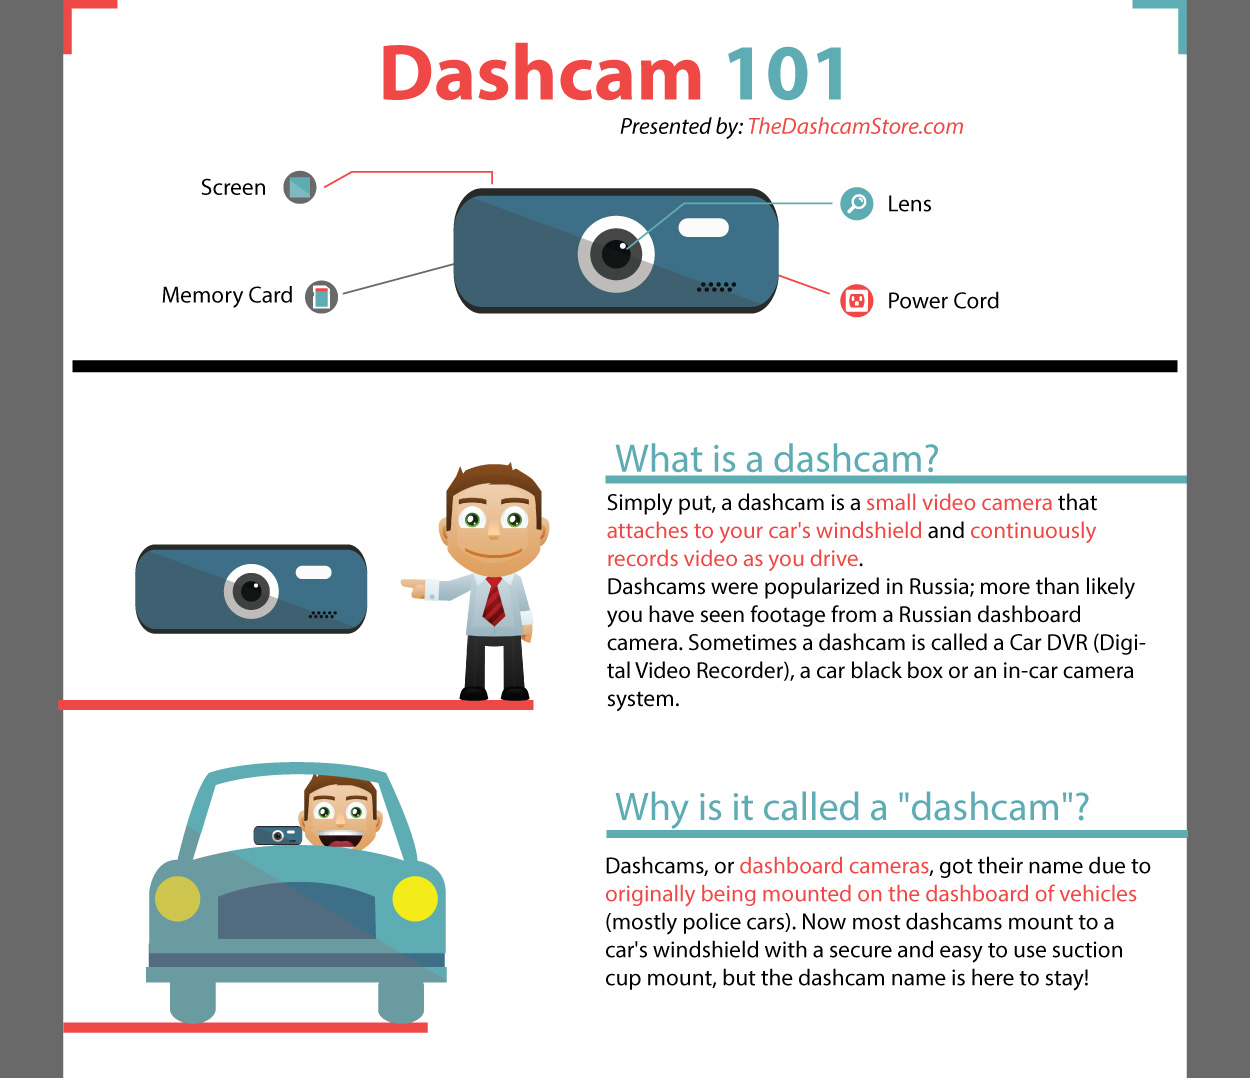 Dashcam 101 Infographic by The Dashcam Store